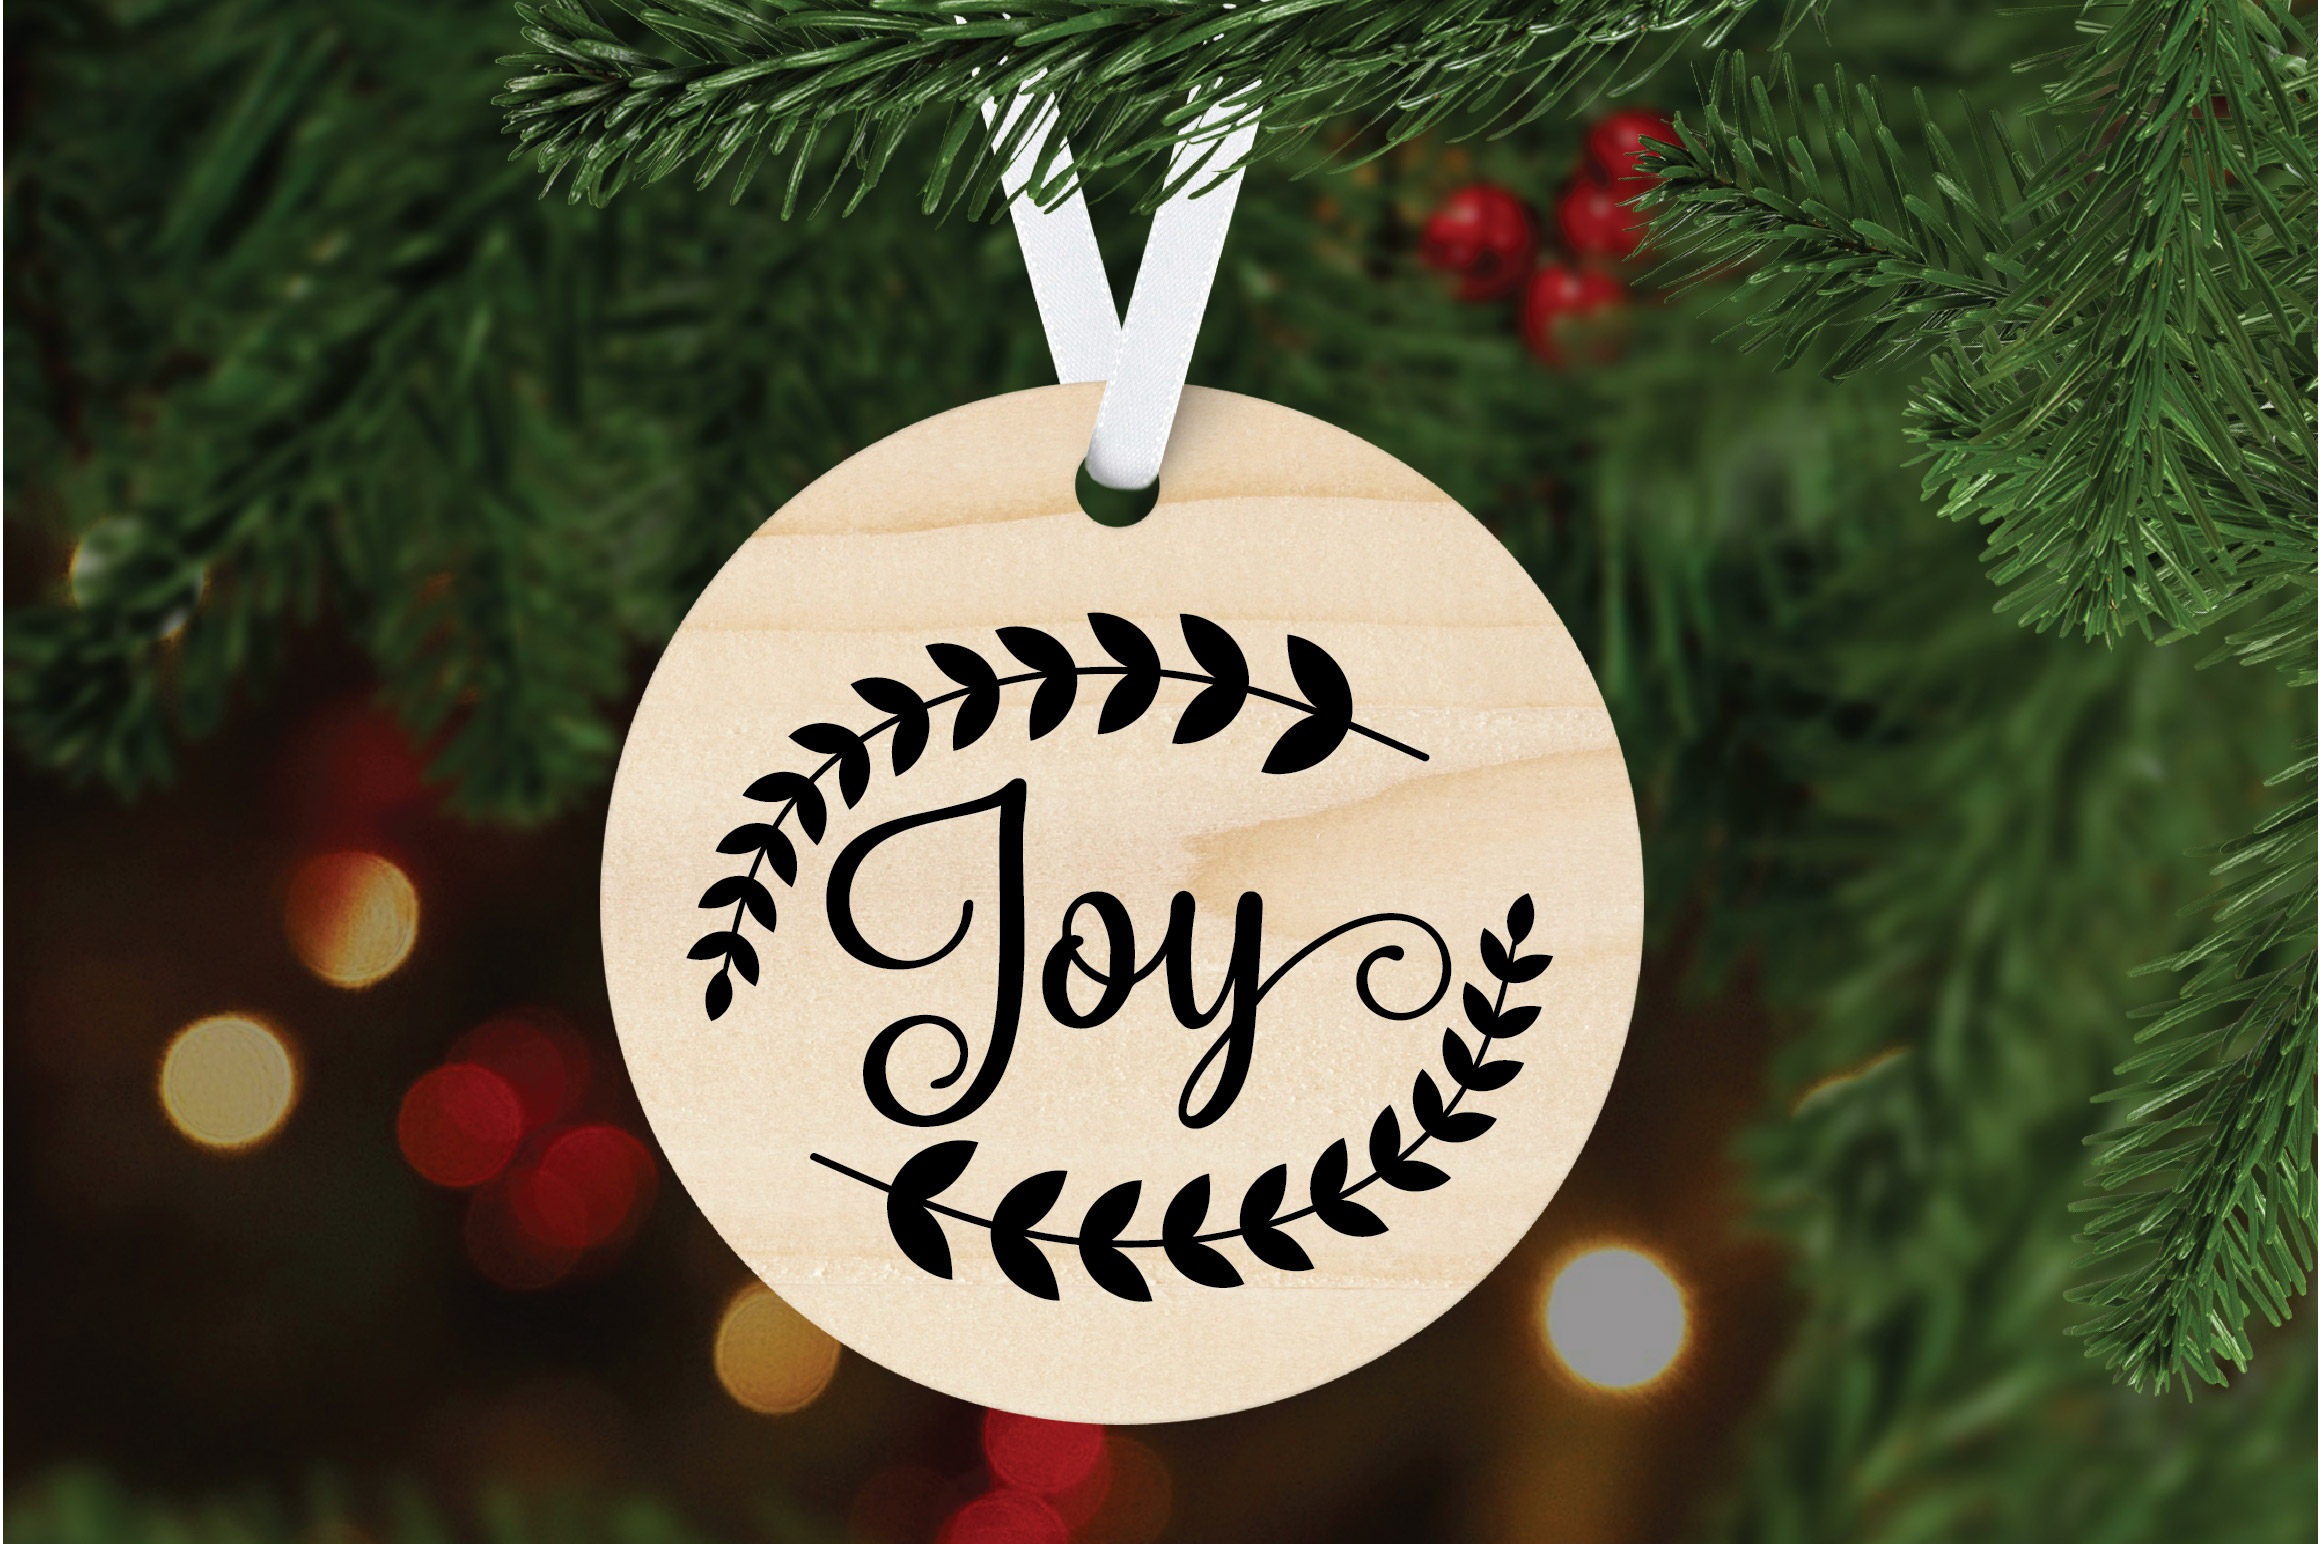 Christmas SVG Cut File - Joy SVG DXF PNG EPS JPG example image 6